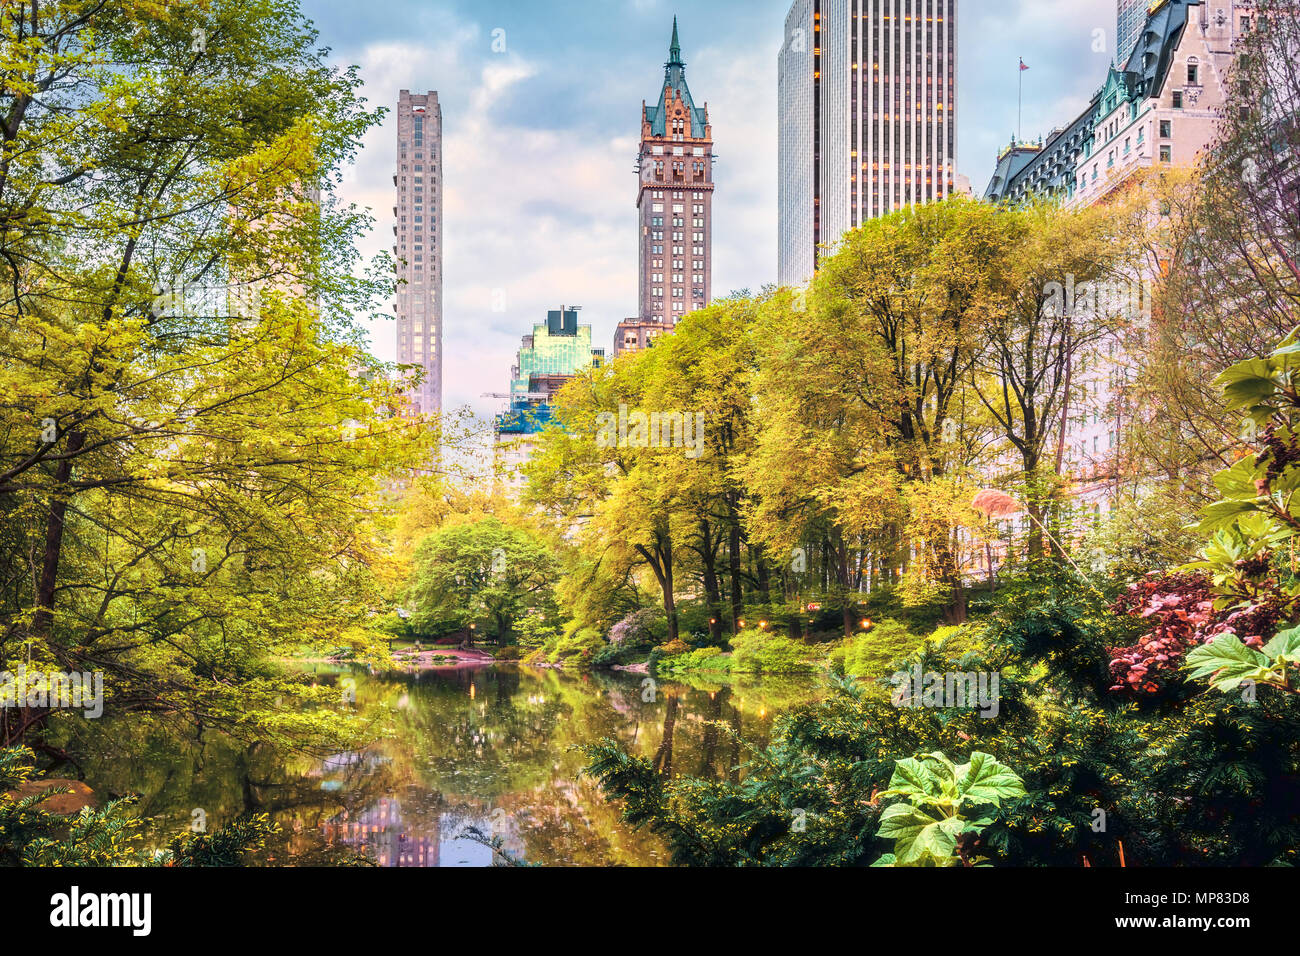 Der Teich im Central Park, New York City Stockbild